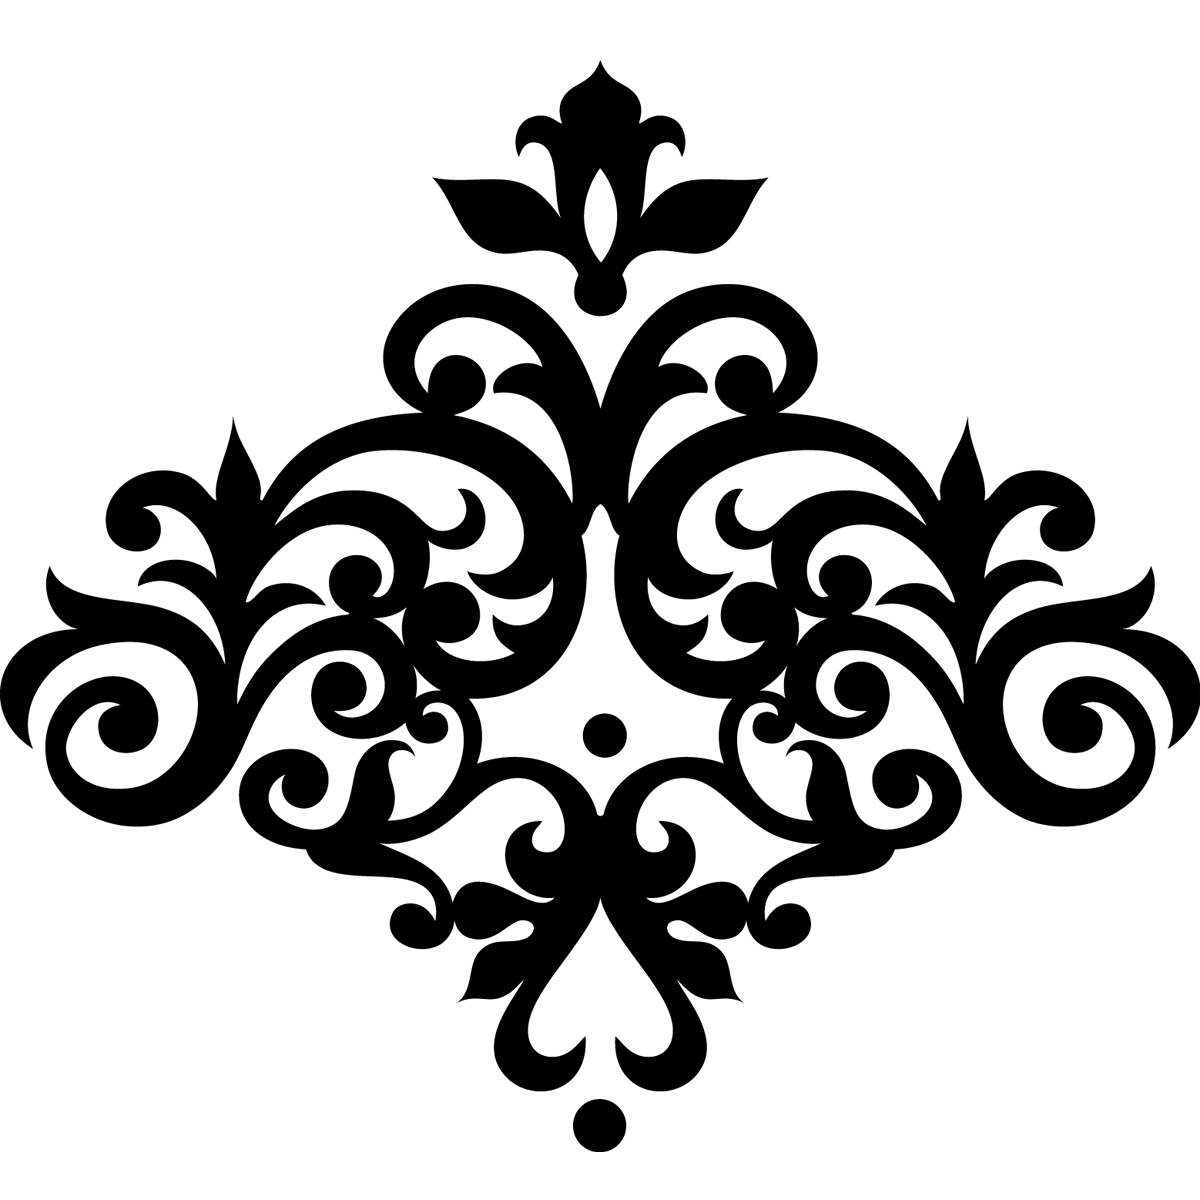 Decoration Murale Baroque Stickers Muraux Design Sticker Mural Fleur Baroque